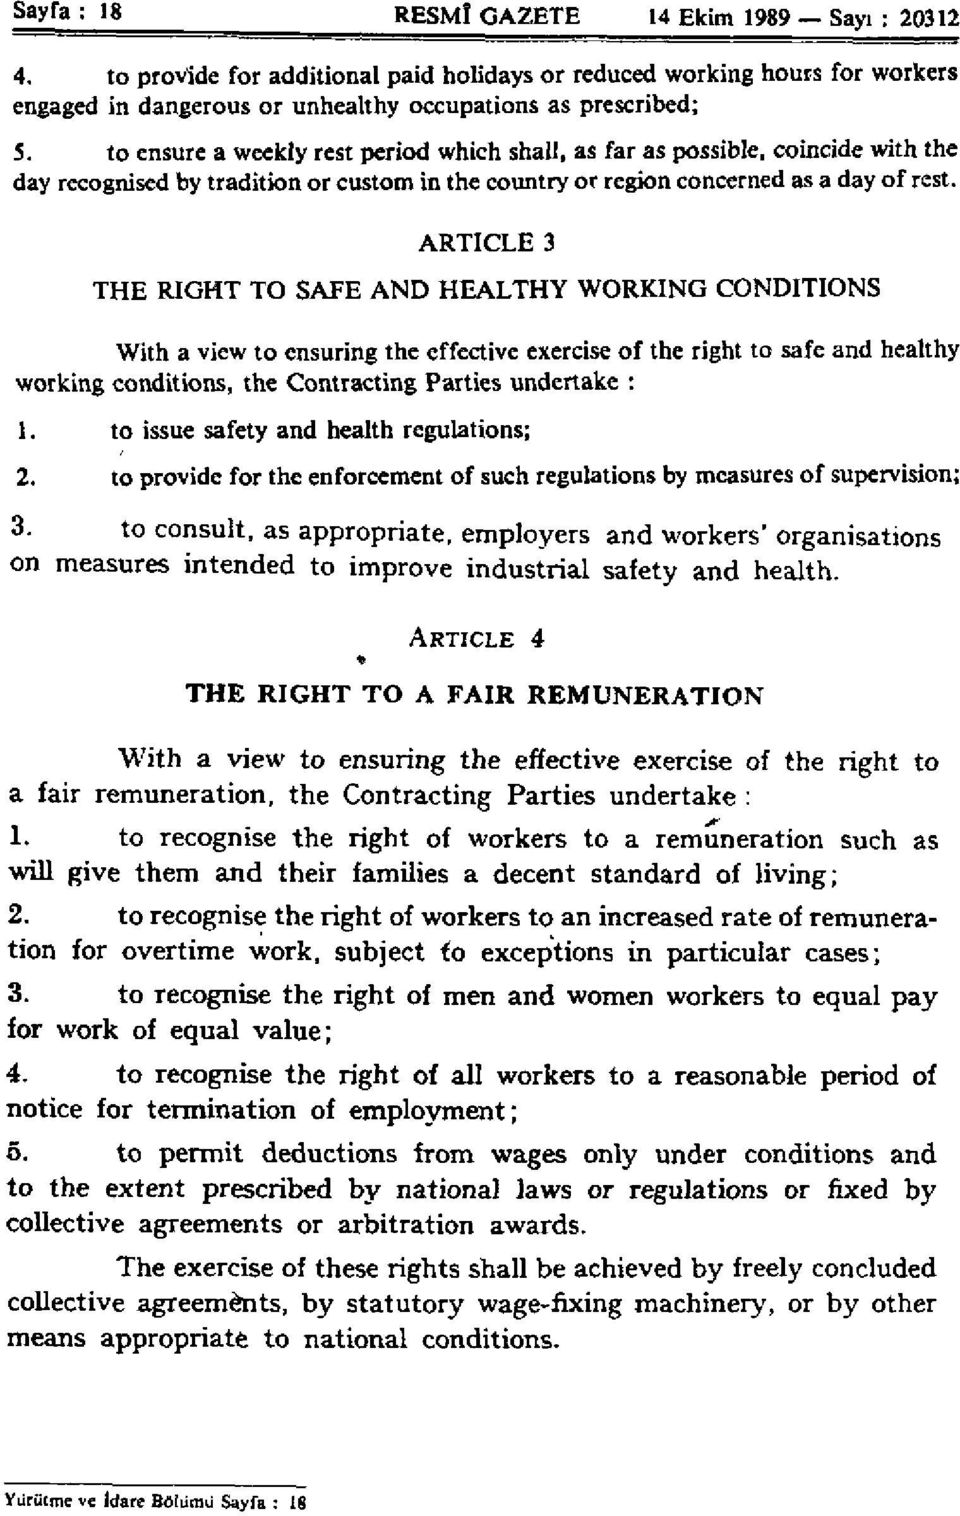 ARTICLE 3 THE RIGHT TO SAFE AND HEALTHY WORKING CONDITIONS With a view to ensuring the effective exercise of the right to safe and healthy working conditions, the Contracting Parties undertake : 1.